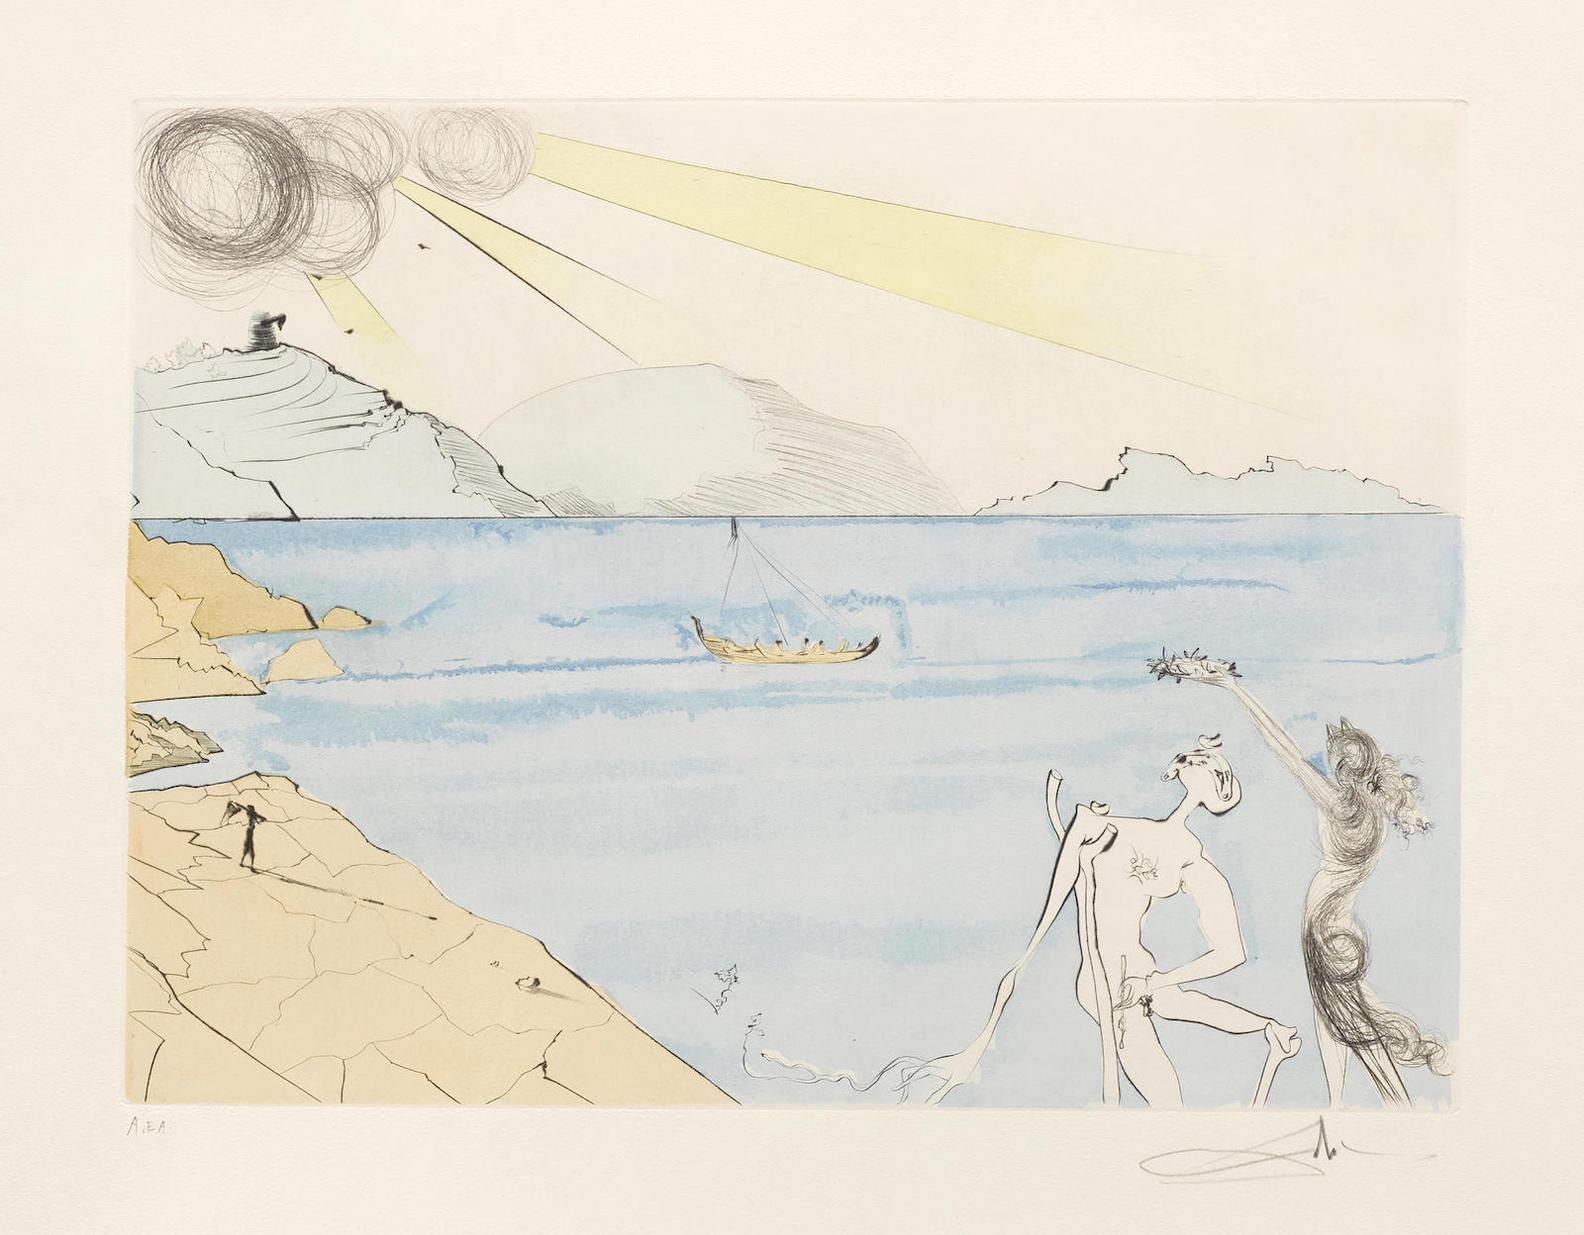 Salvador Dali-The Laurels Of Happiness; From After 50 Years Of Surrealism (F. 74-8D)-1974